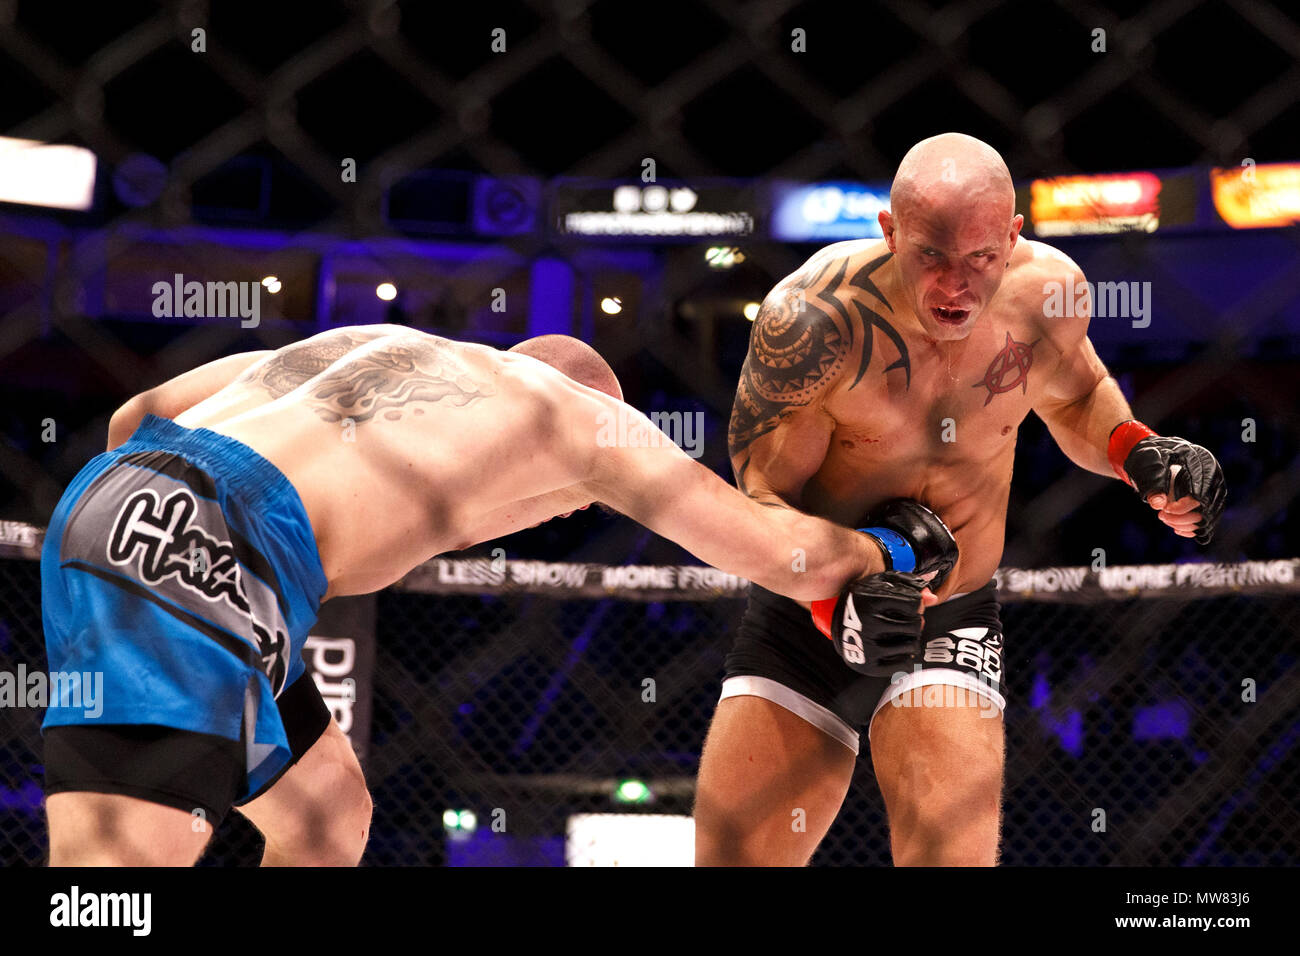 Mixed Martial Arts (MMA) fighter Shaun Hampton catches Gaz Corran in the chest with a right hook at ACB 54 in Manchester, UK. Corran would ultimately win the fight by unanimous decision. Absolute Championship Berkut, Mixed Martial Arts, MMA fight. Stock Photo